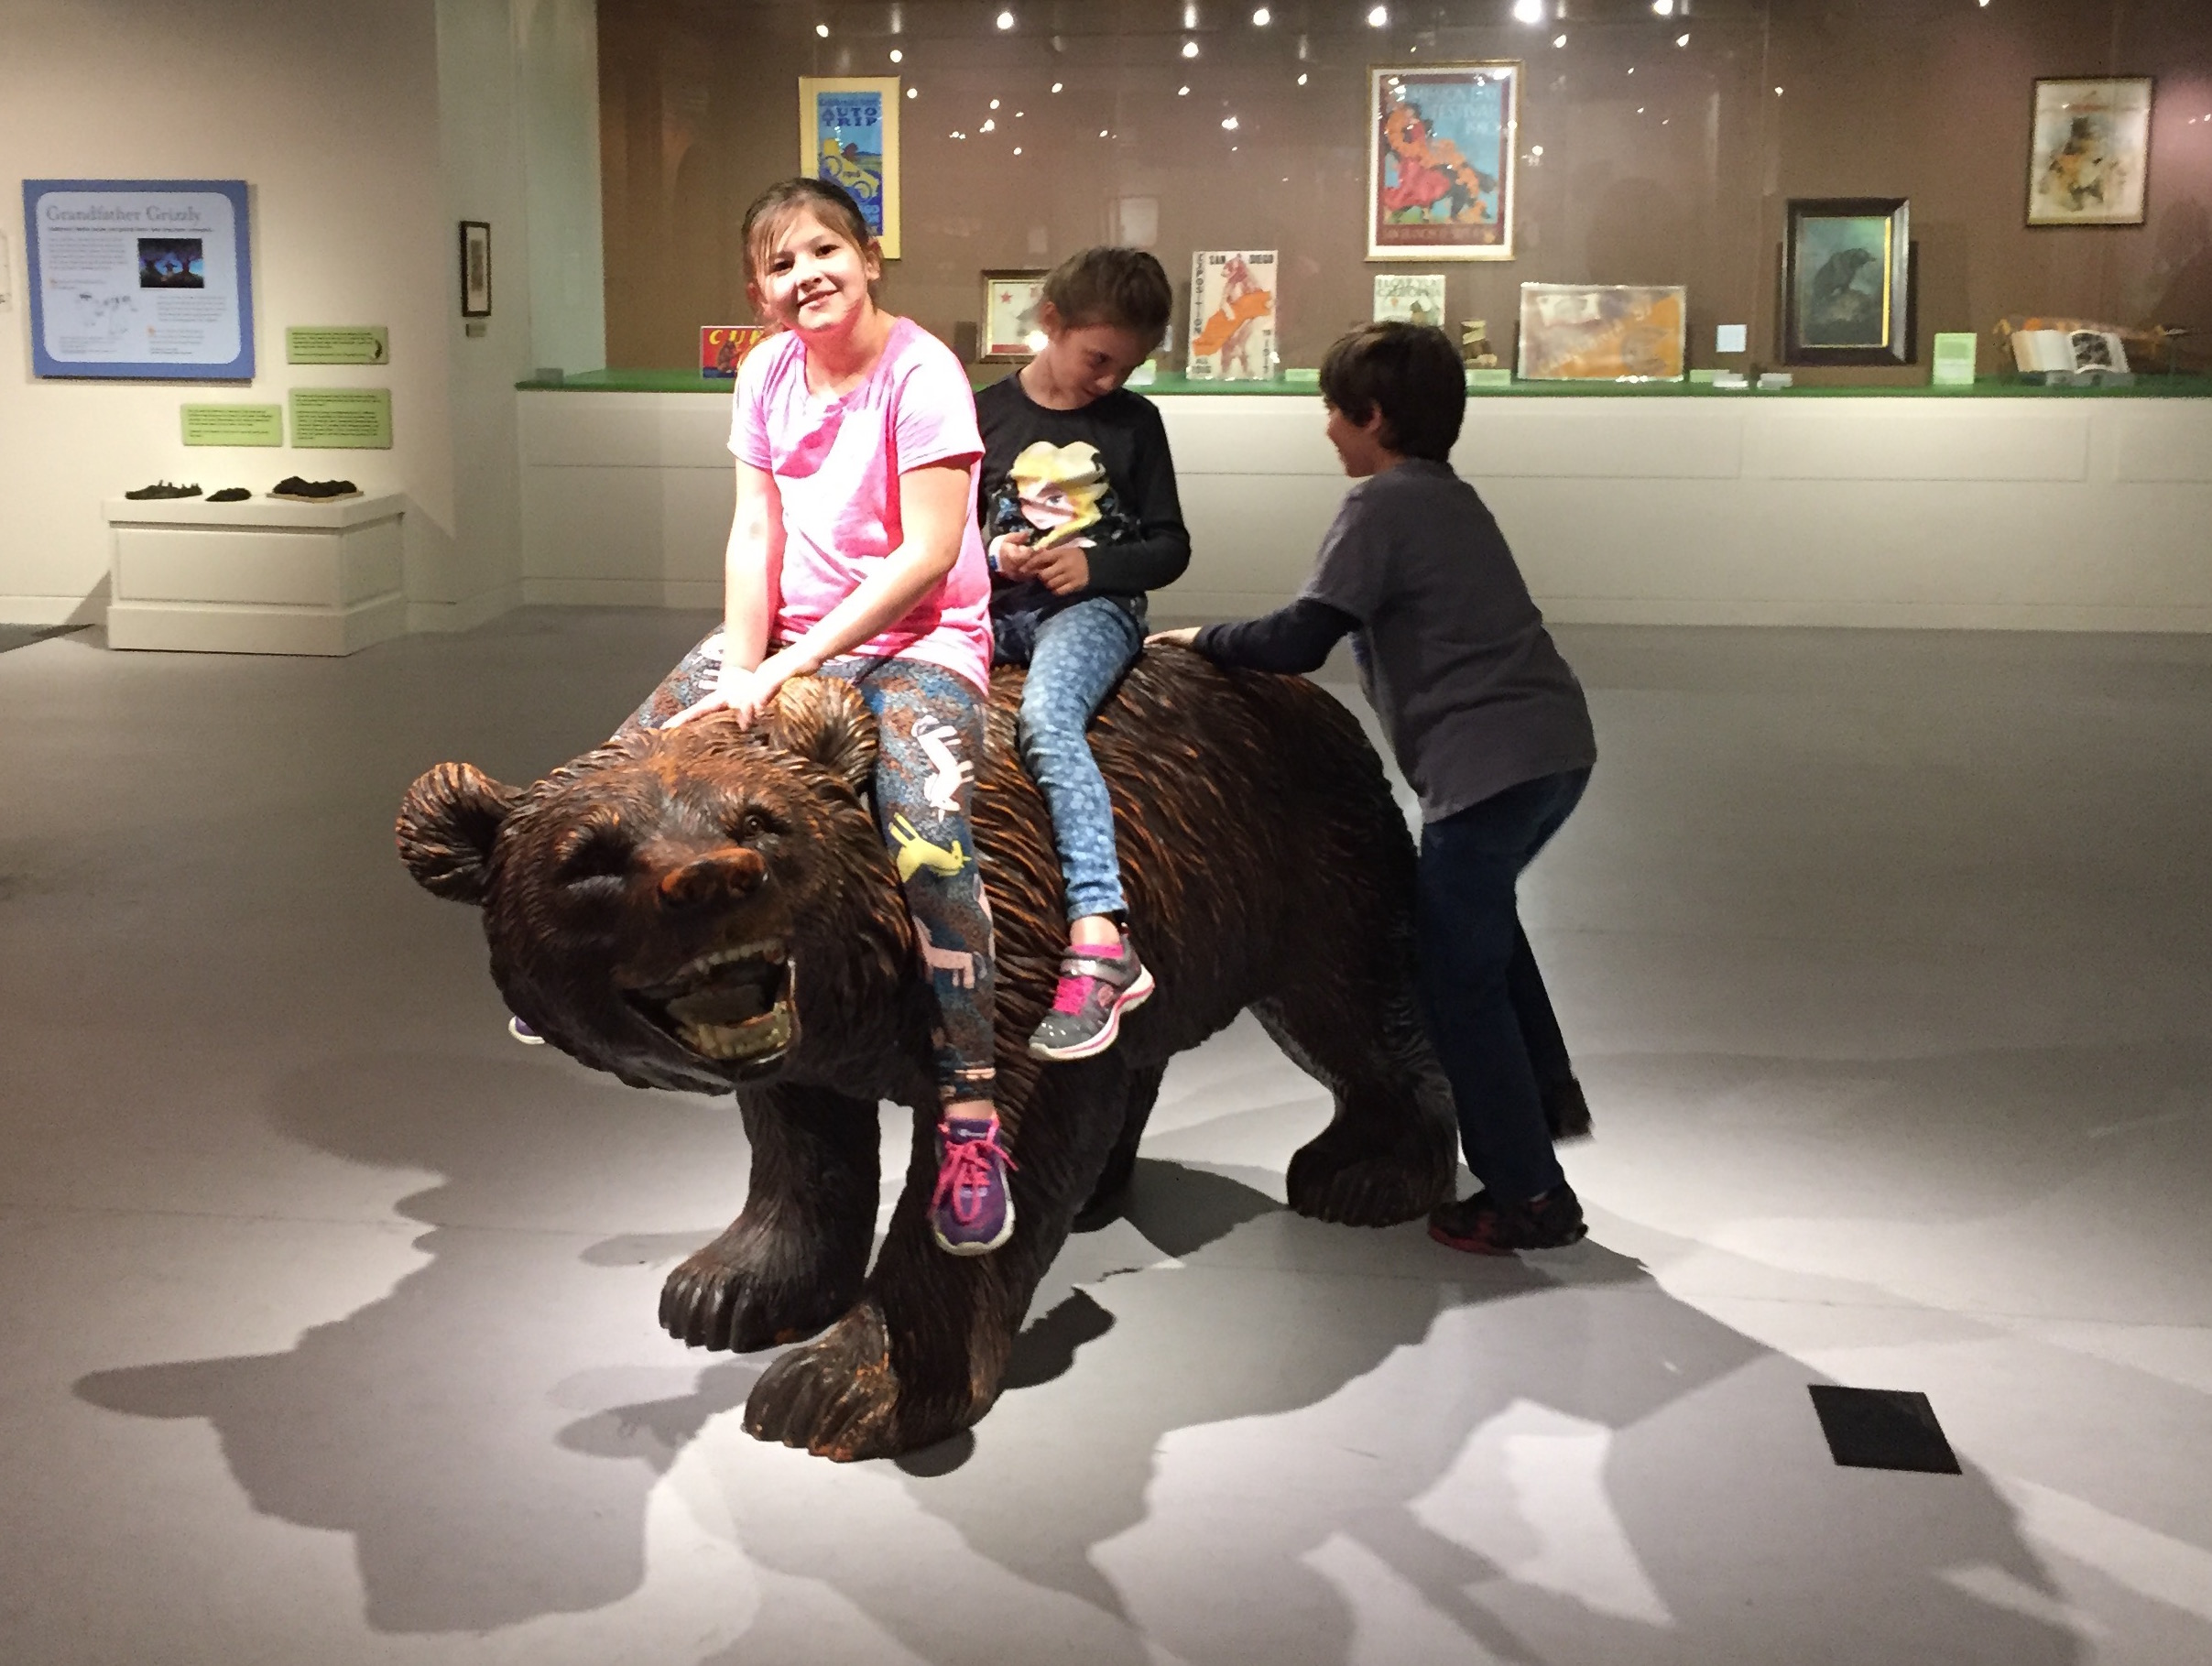 Kids play on a grizzly bear sculpture at the California Museum in Sacramento.